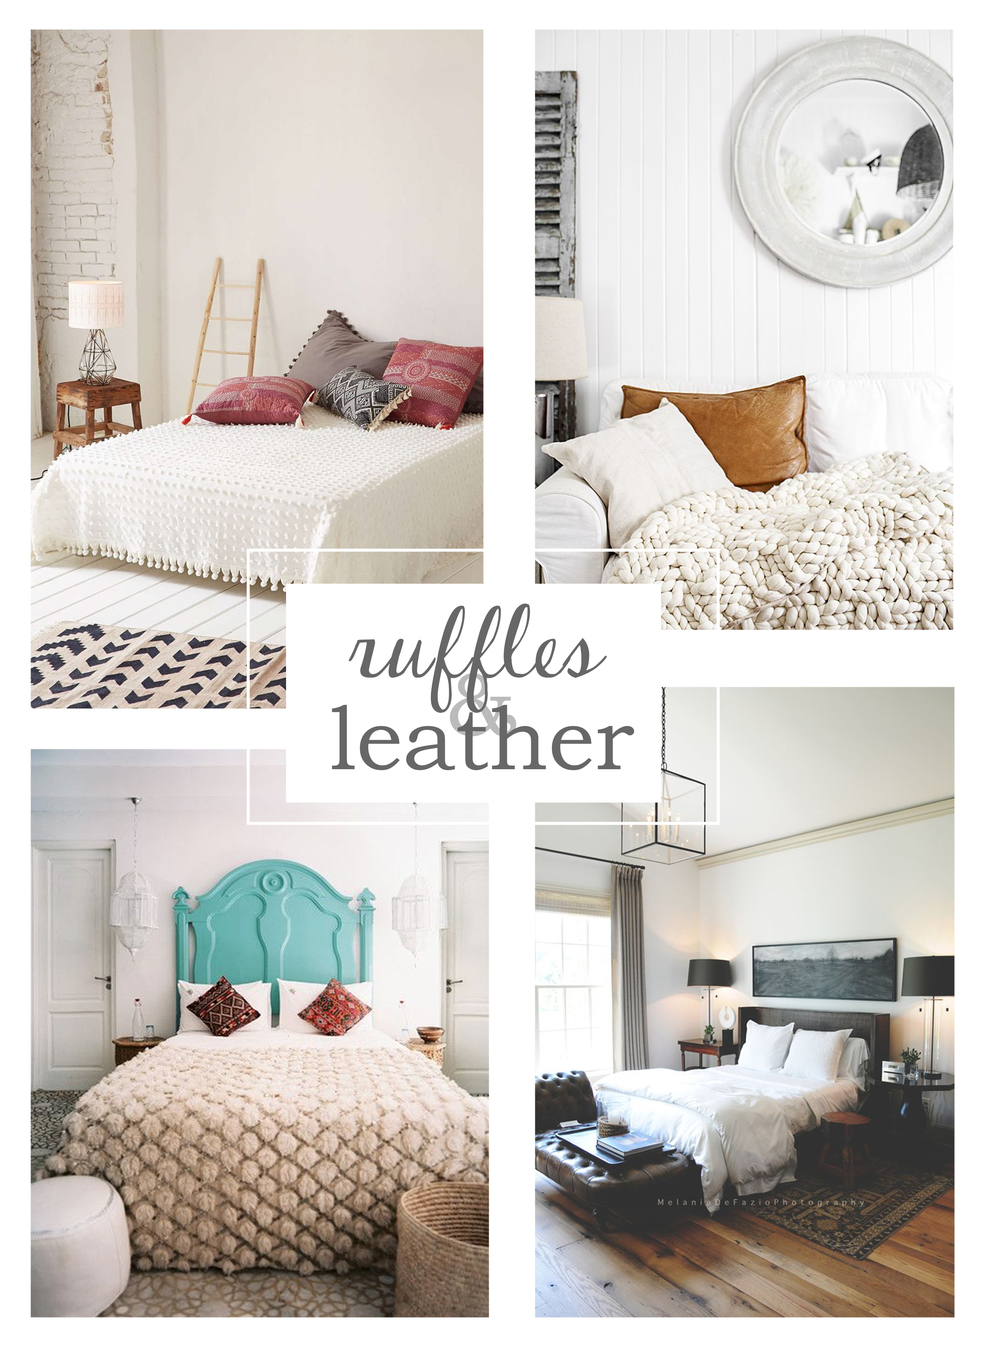 ruffles-leather.jpg